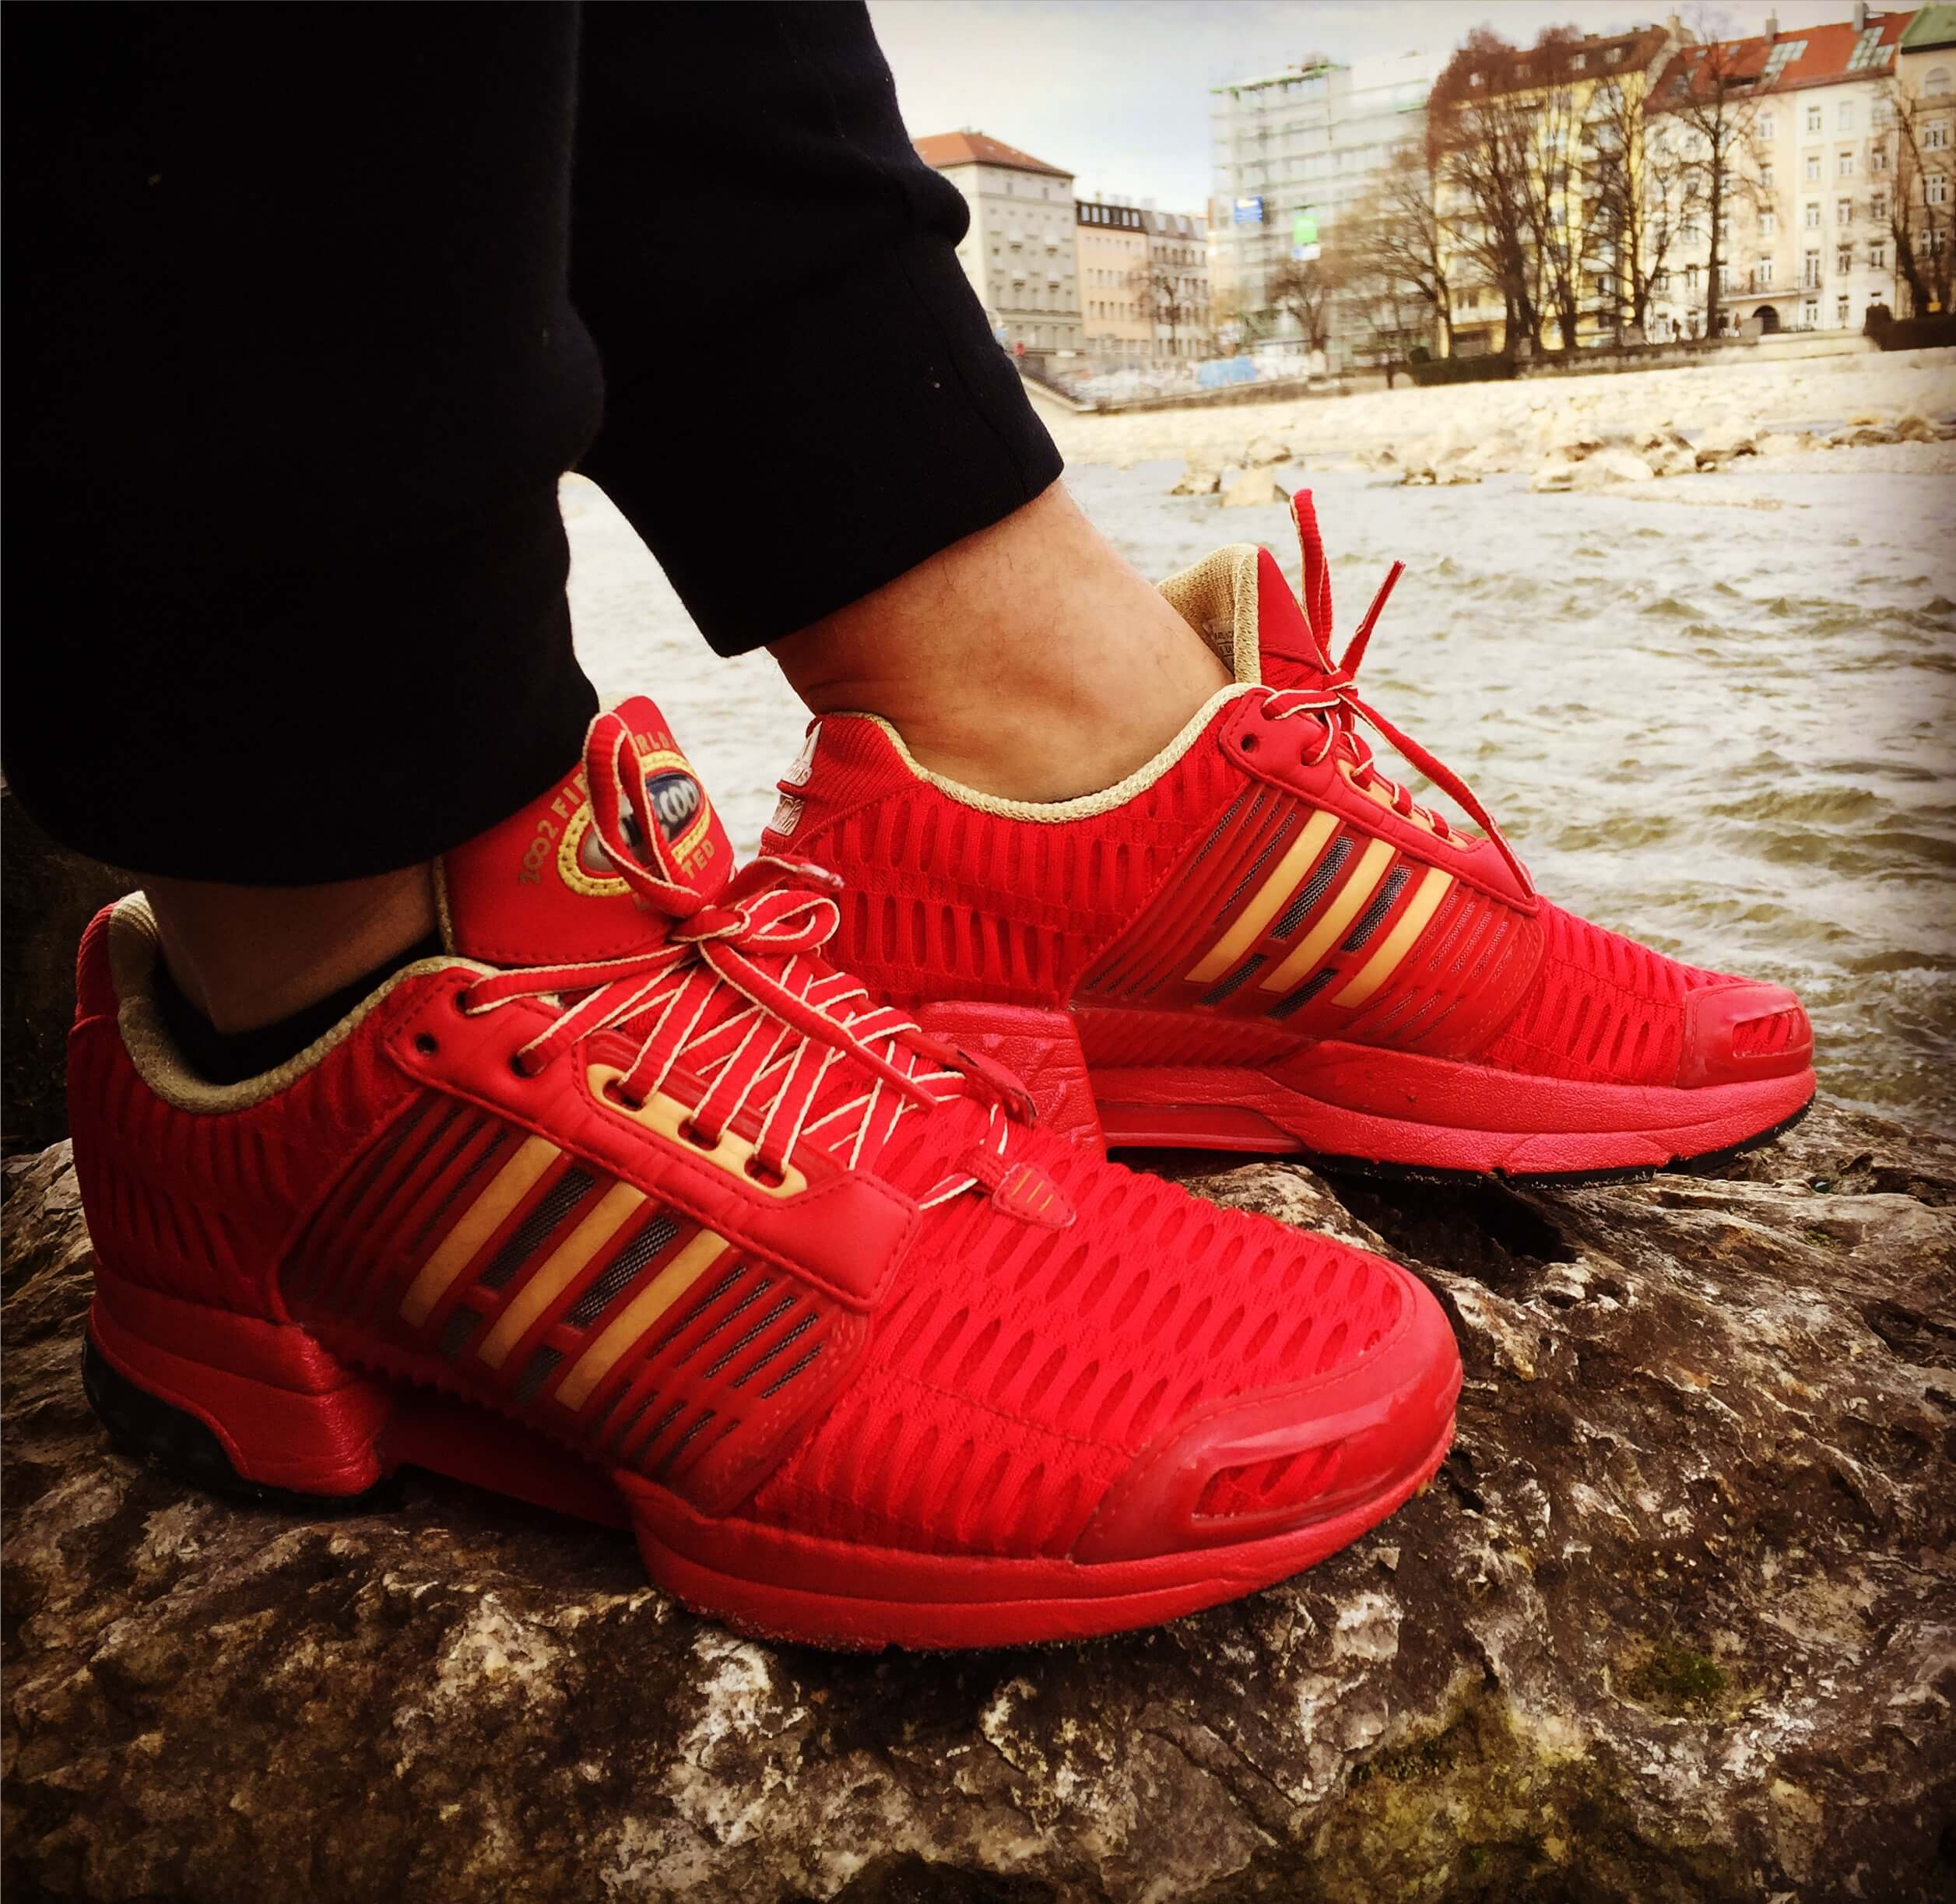 Adidas-ClimaCool-Coca-Cola-Side-View-High-Benstah-Onfeet